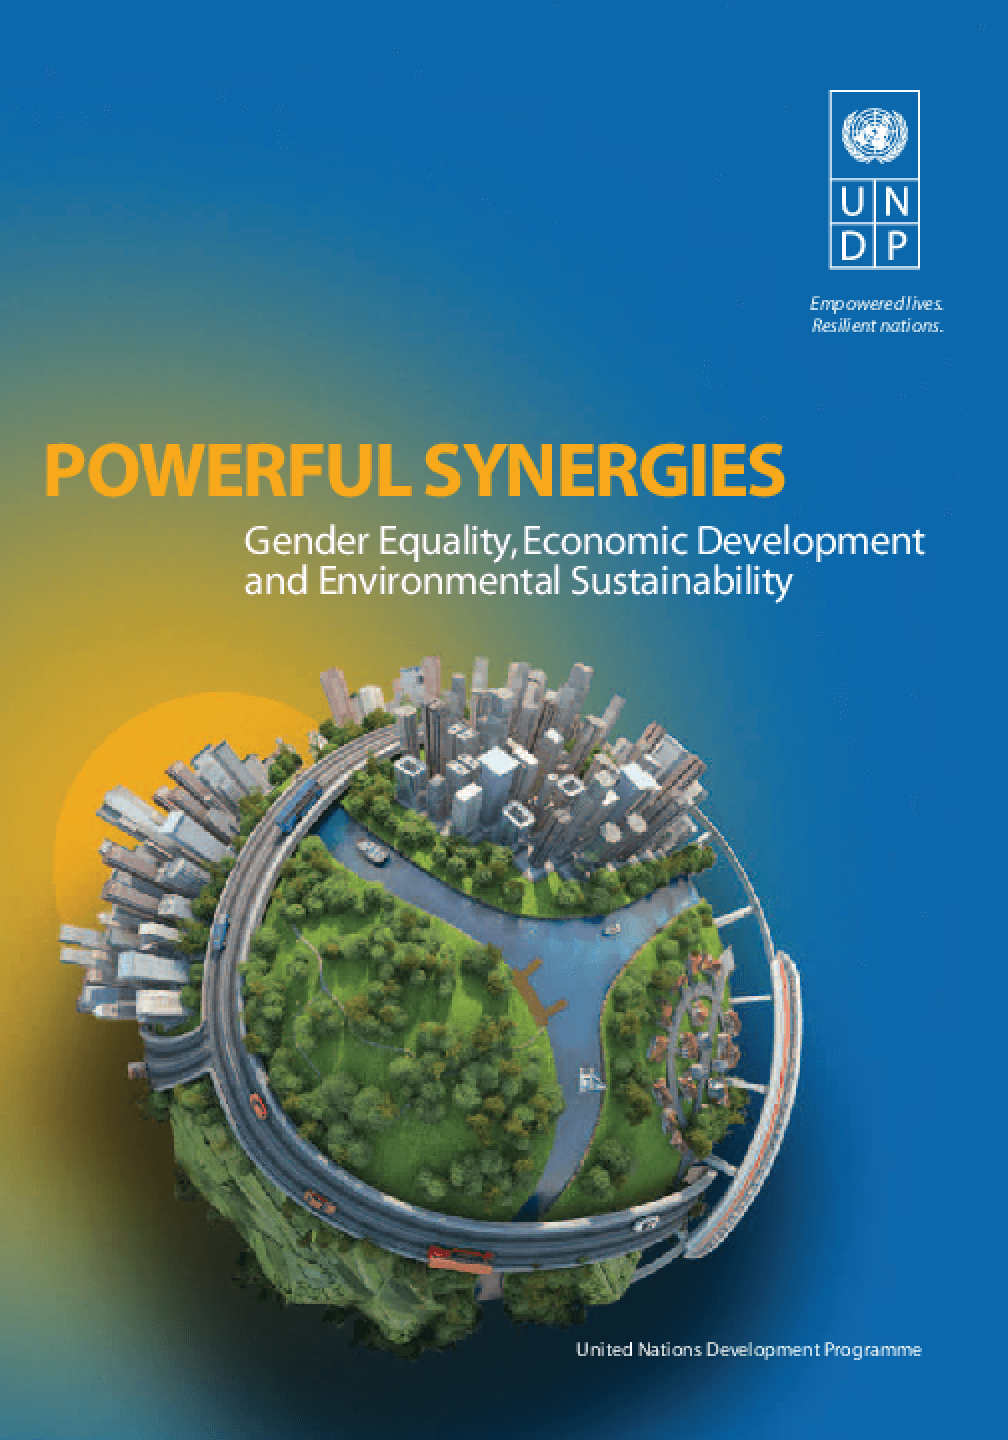 Powerful-synergies: Gender Equality, Economic Development and Environmental Sustainability